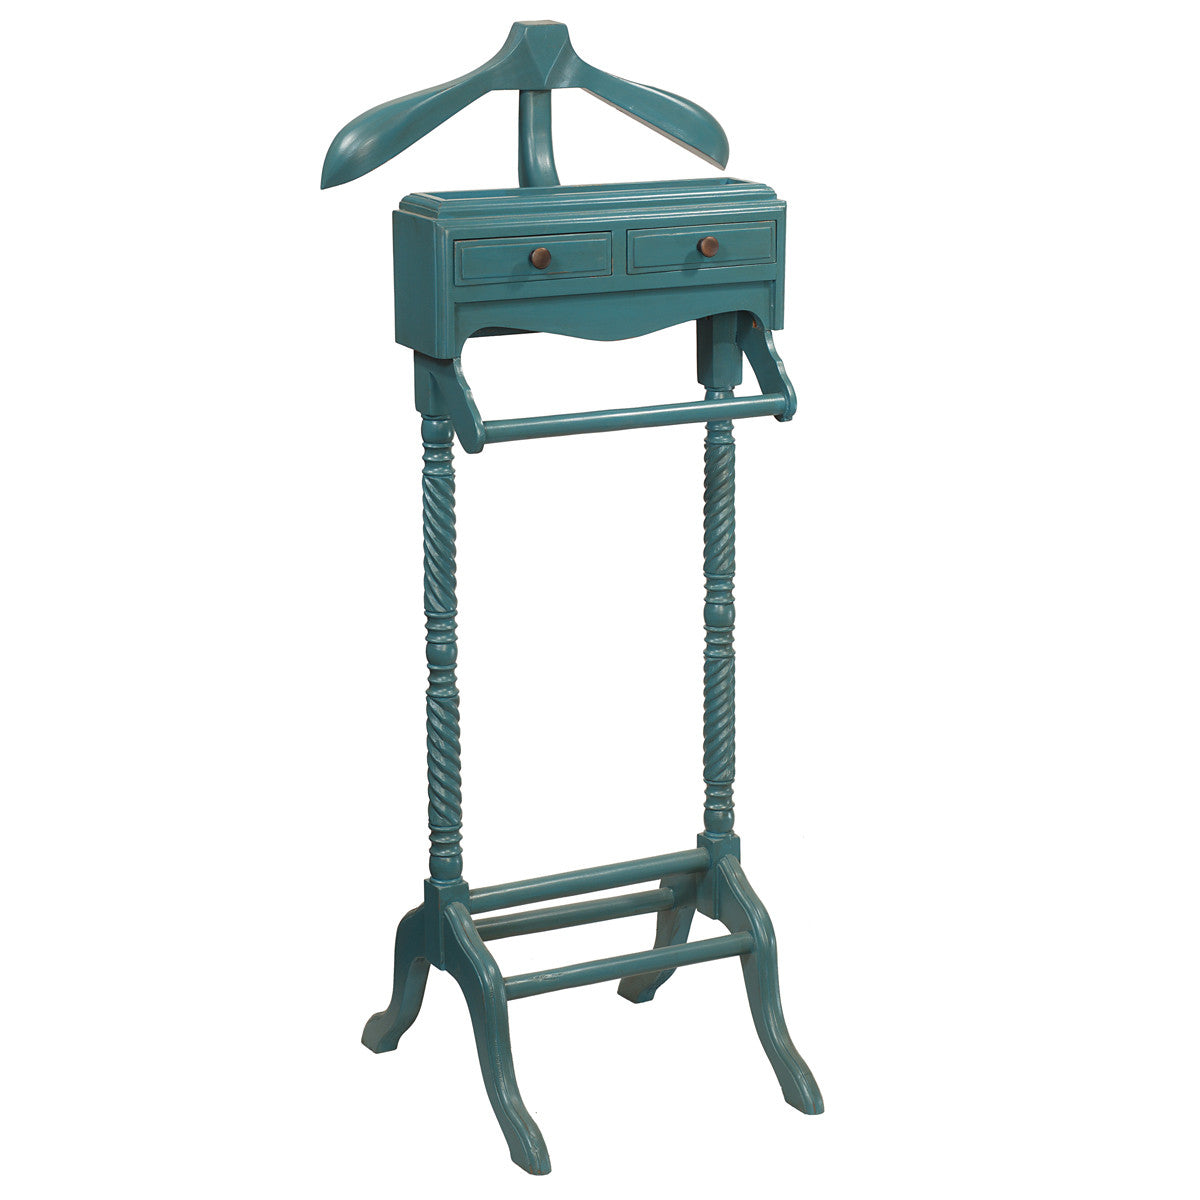 Ordinaire Javall Valet Stand, Teal